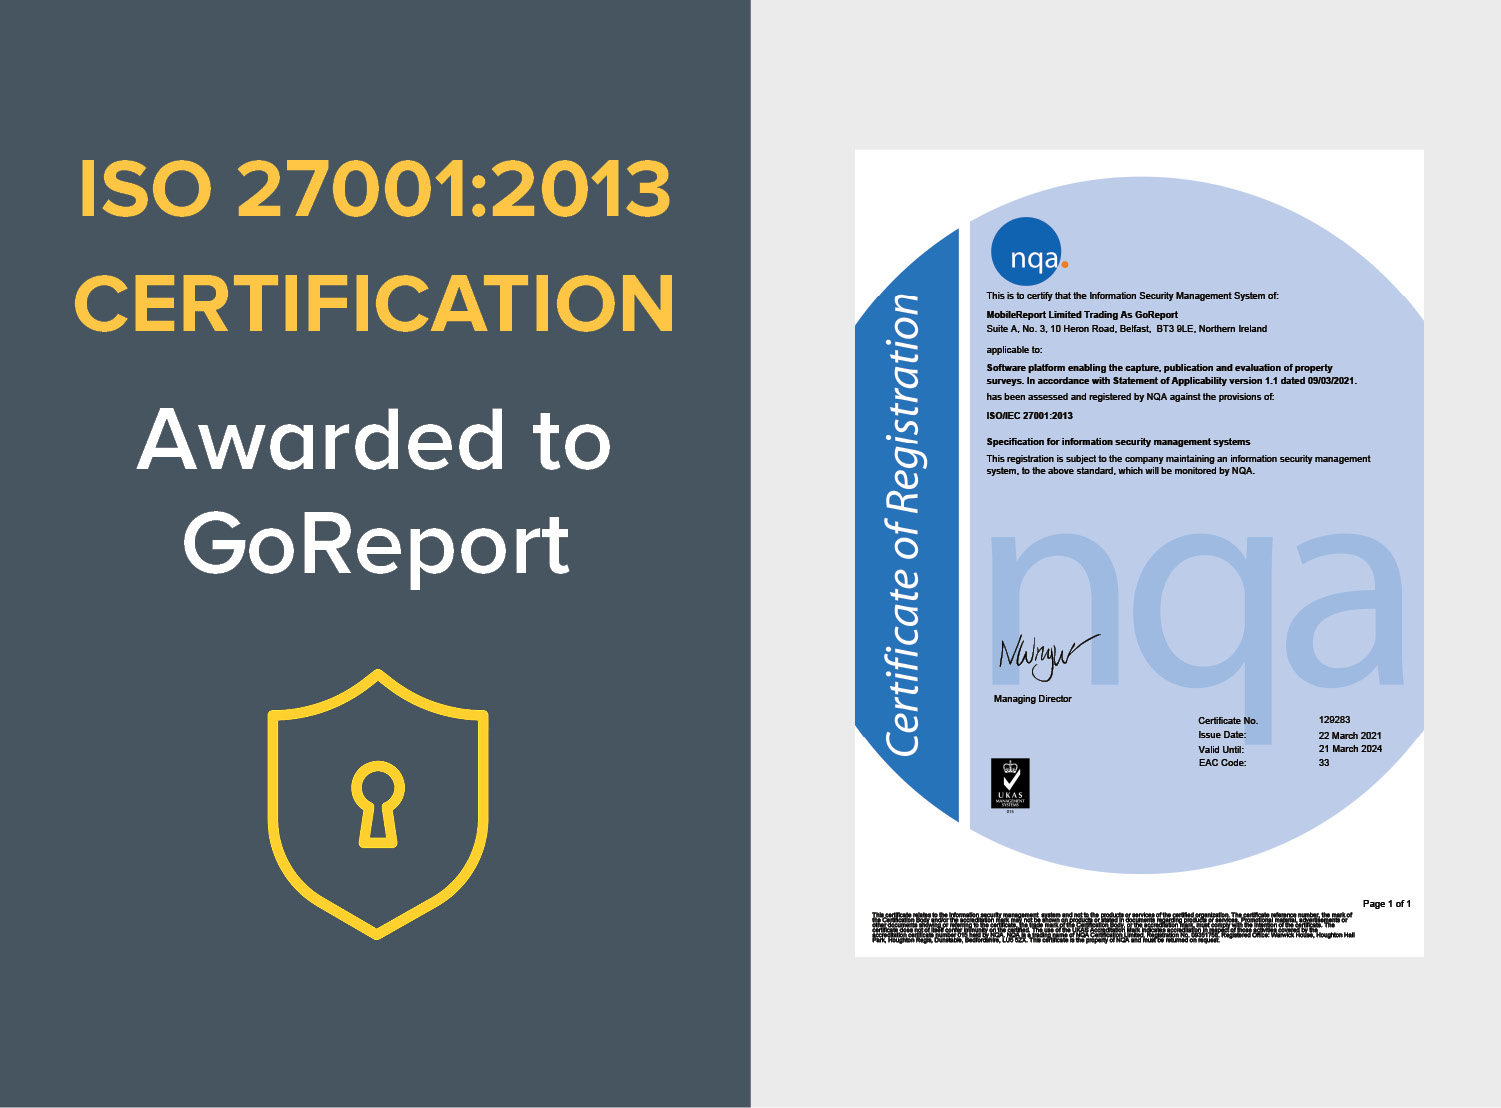 GoReport receives ISO/IEC 27001:2013 Certification for Information Security Management Systems (ISMS)